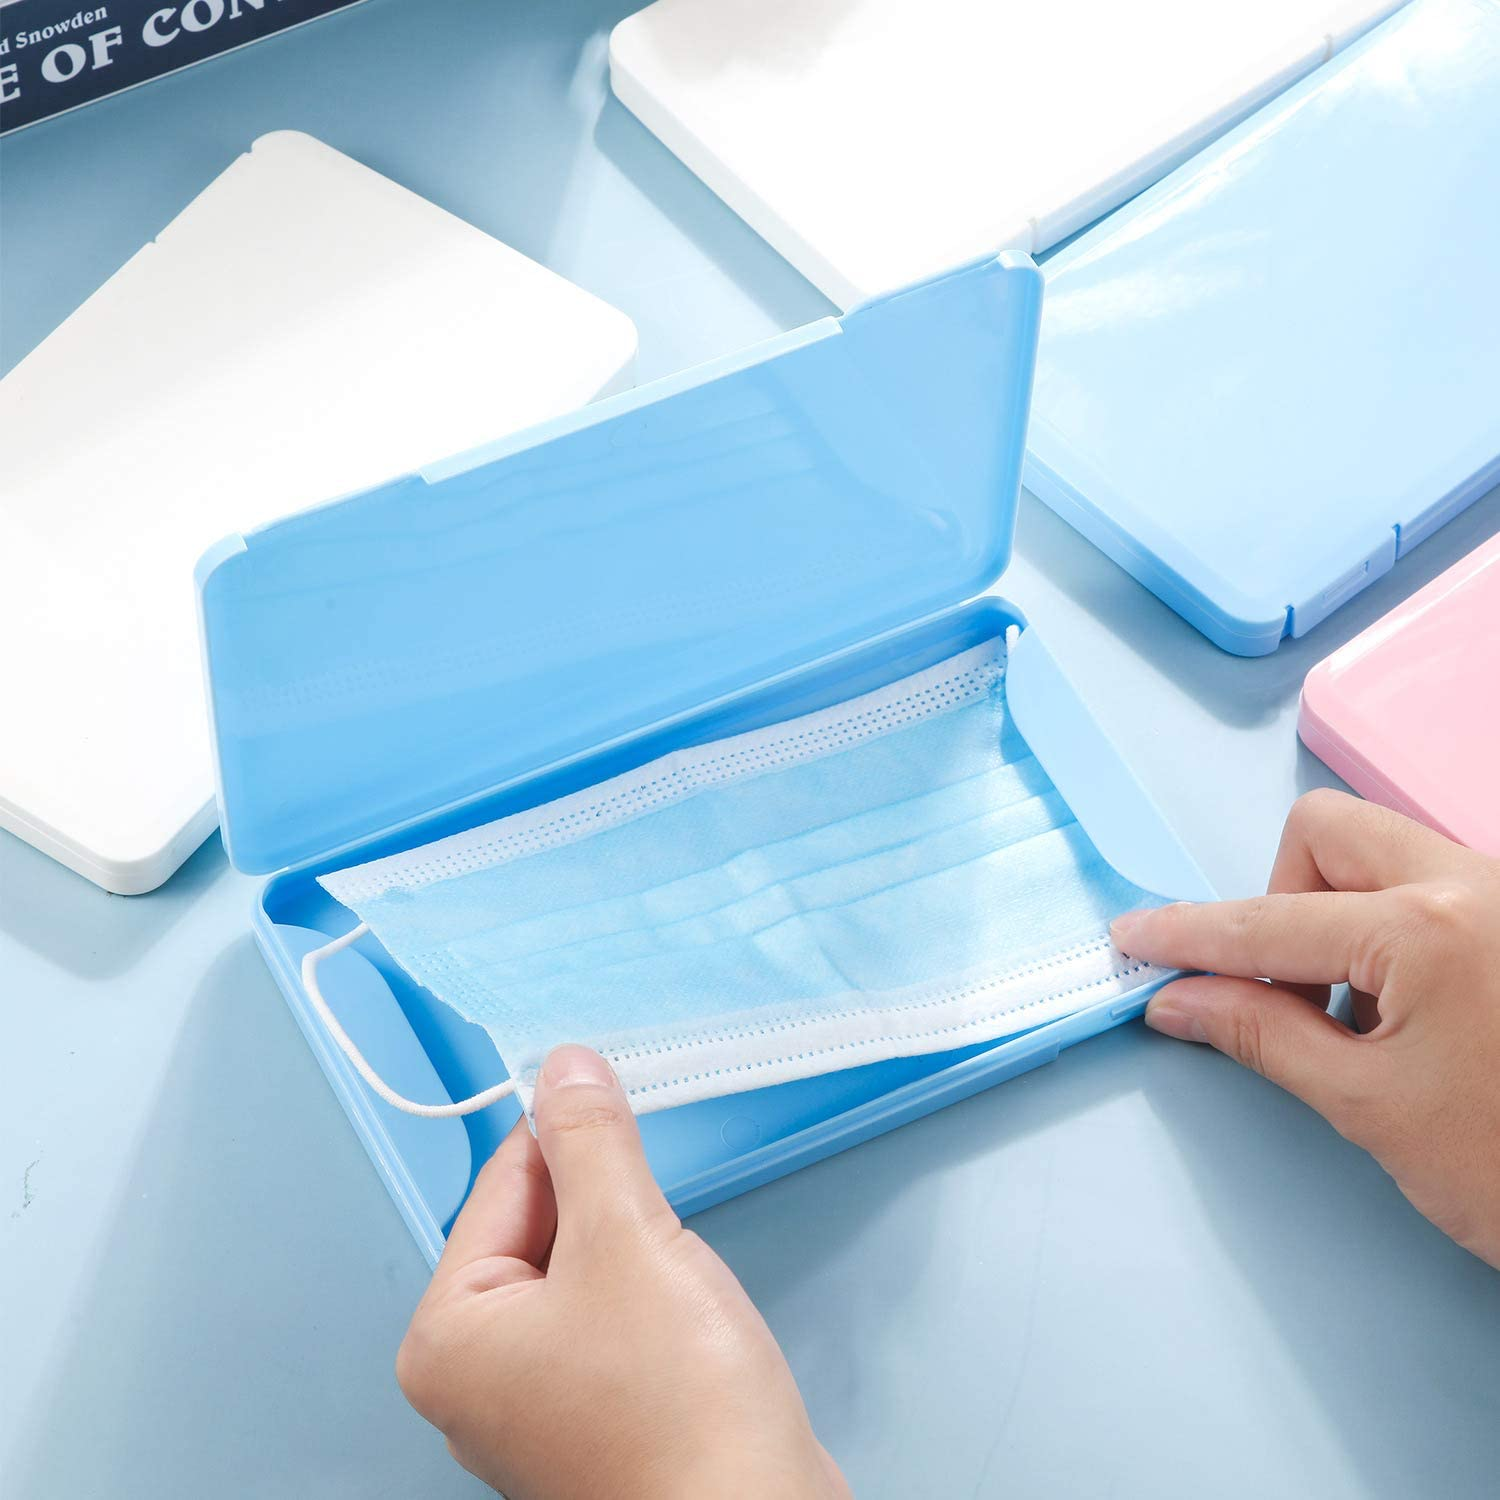 3 Pieces Face Covering Storage Box Plastic Reusable Keeper Folder Portable Plastic Container Case with Lids for Pollution Prevention Face Covering Storing Supplies